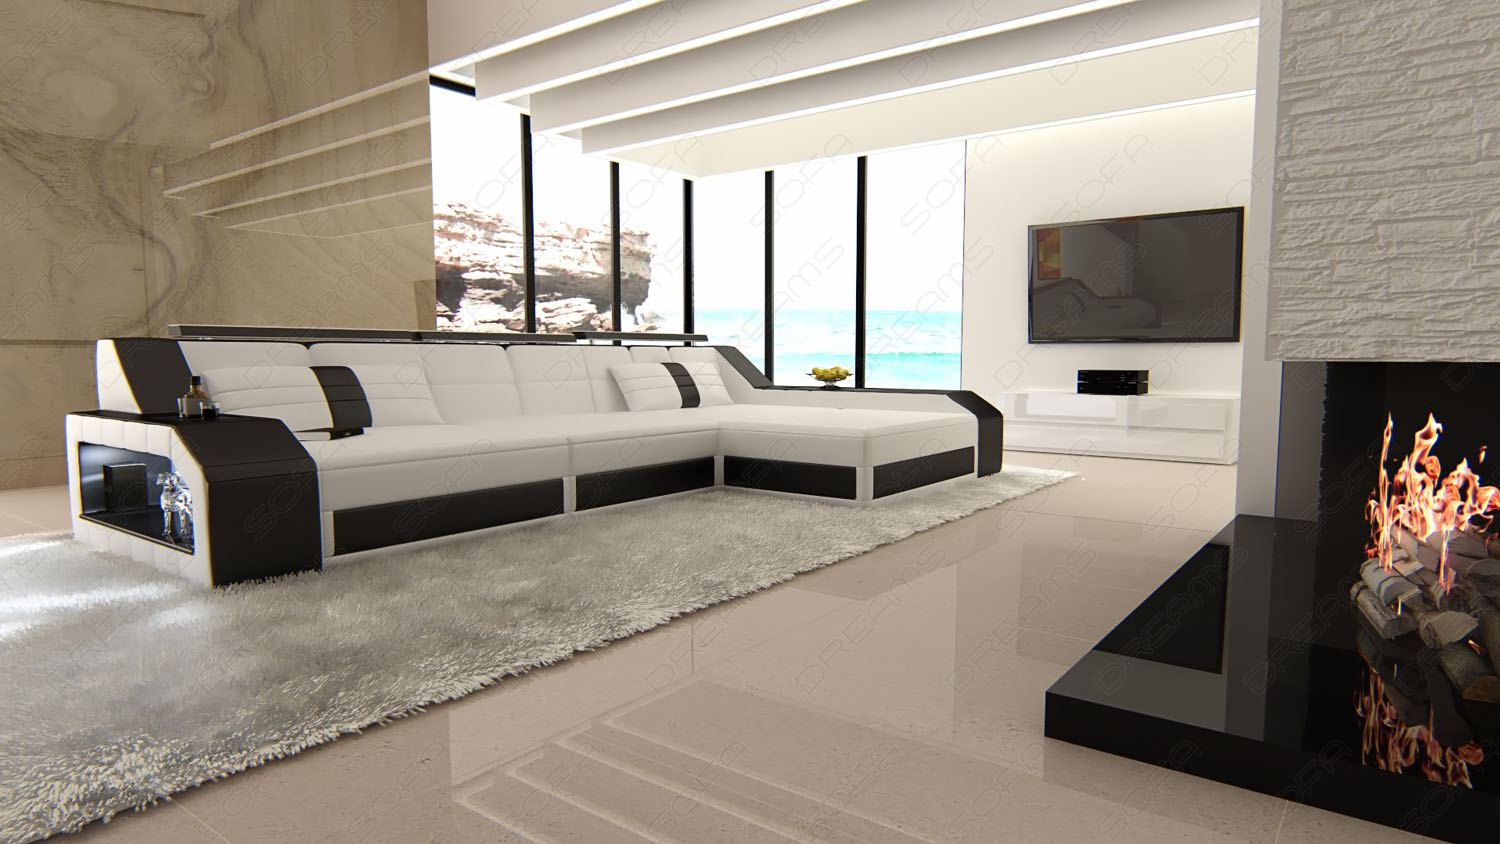 ledersofa eckcouch sofa leder arezzo l form ecksofa beleuchtung viele farben ebay. Black Bedroom Furniture Sets. Home Design Ideas